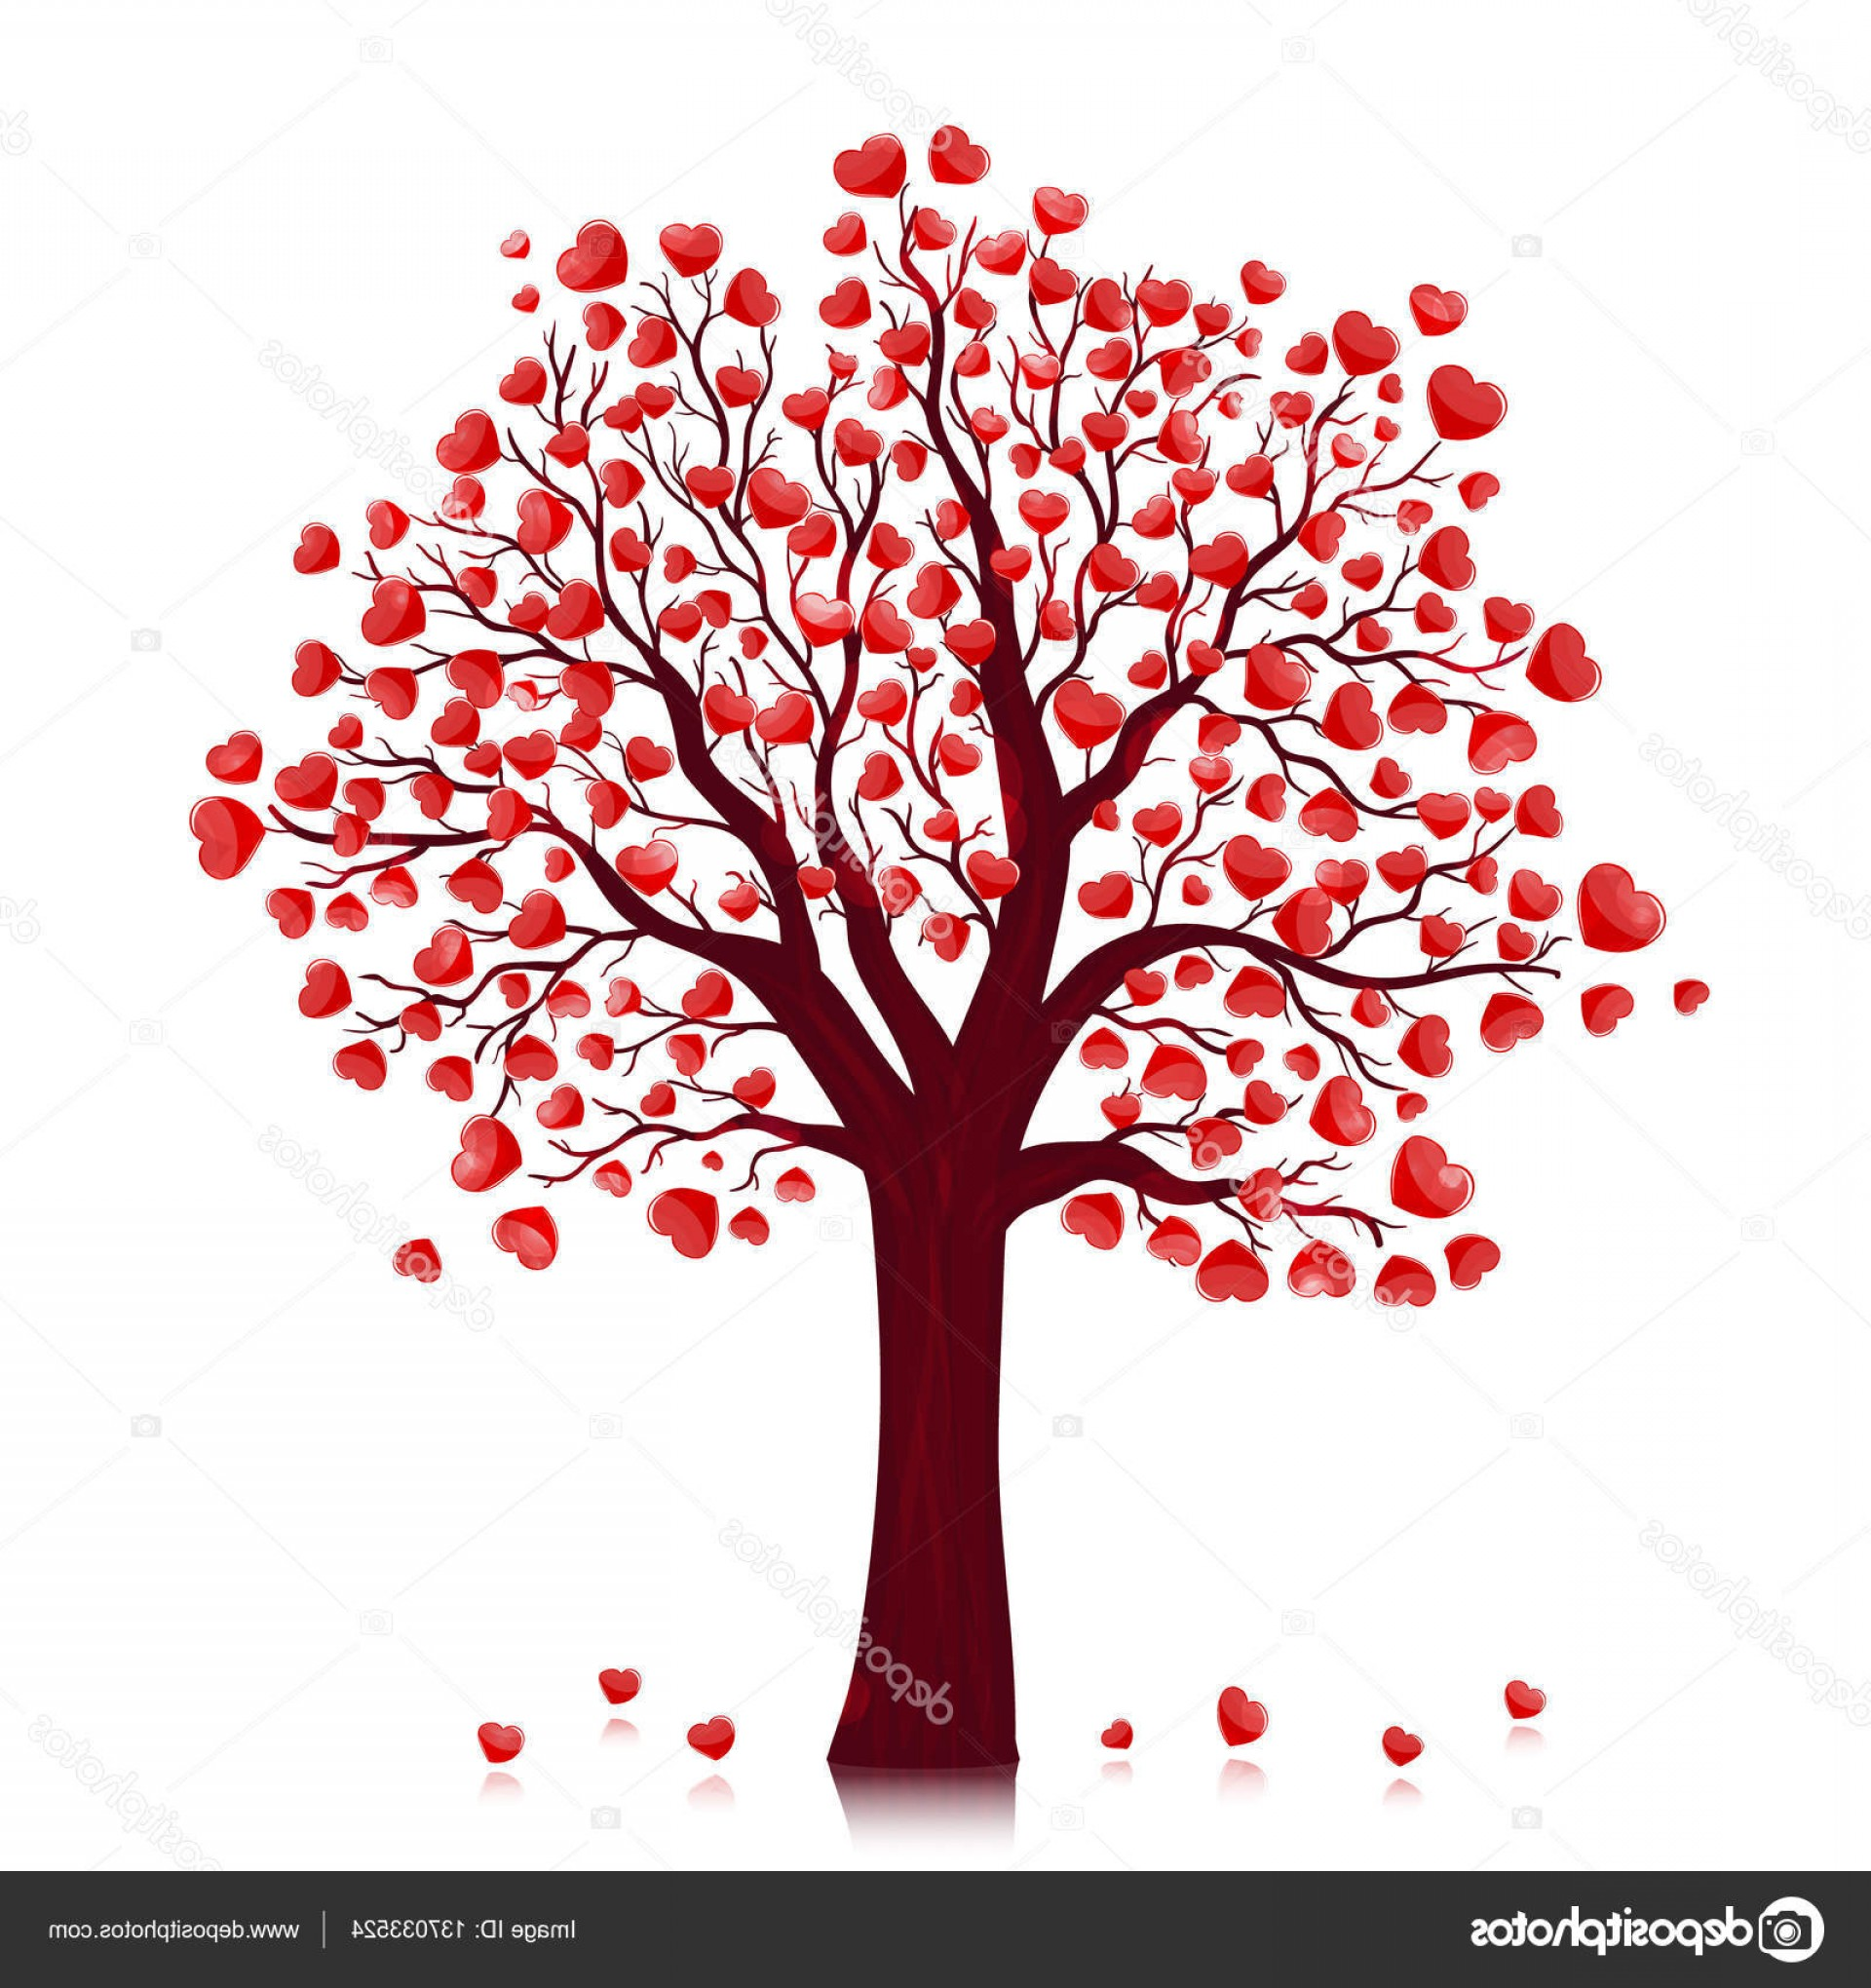 1920x2040 Stock Illustration Red Hearts Tree Vector Background Arenawp